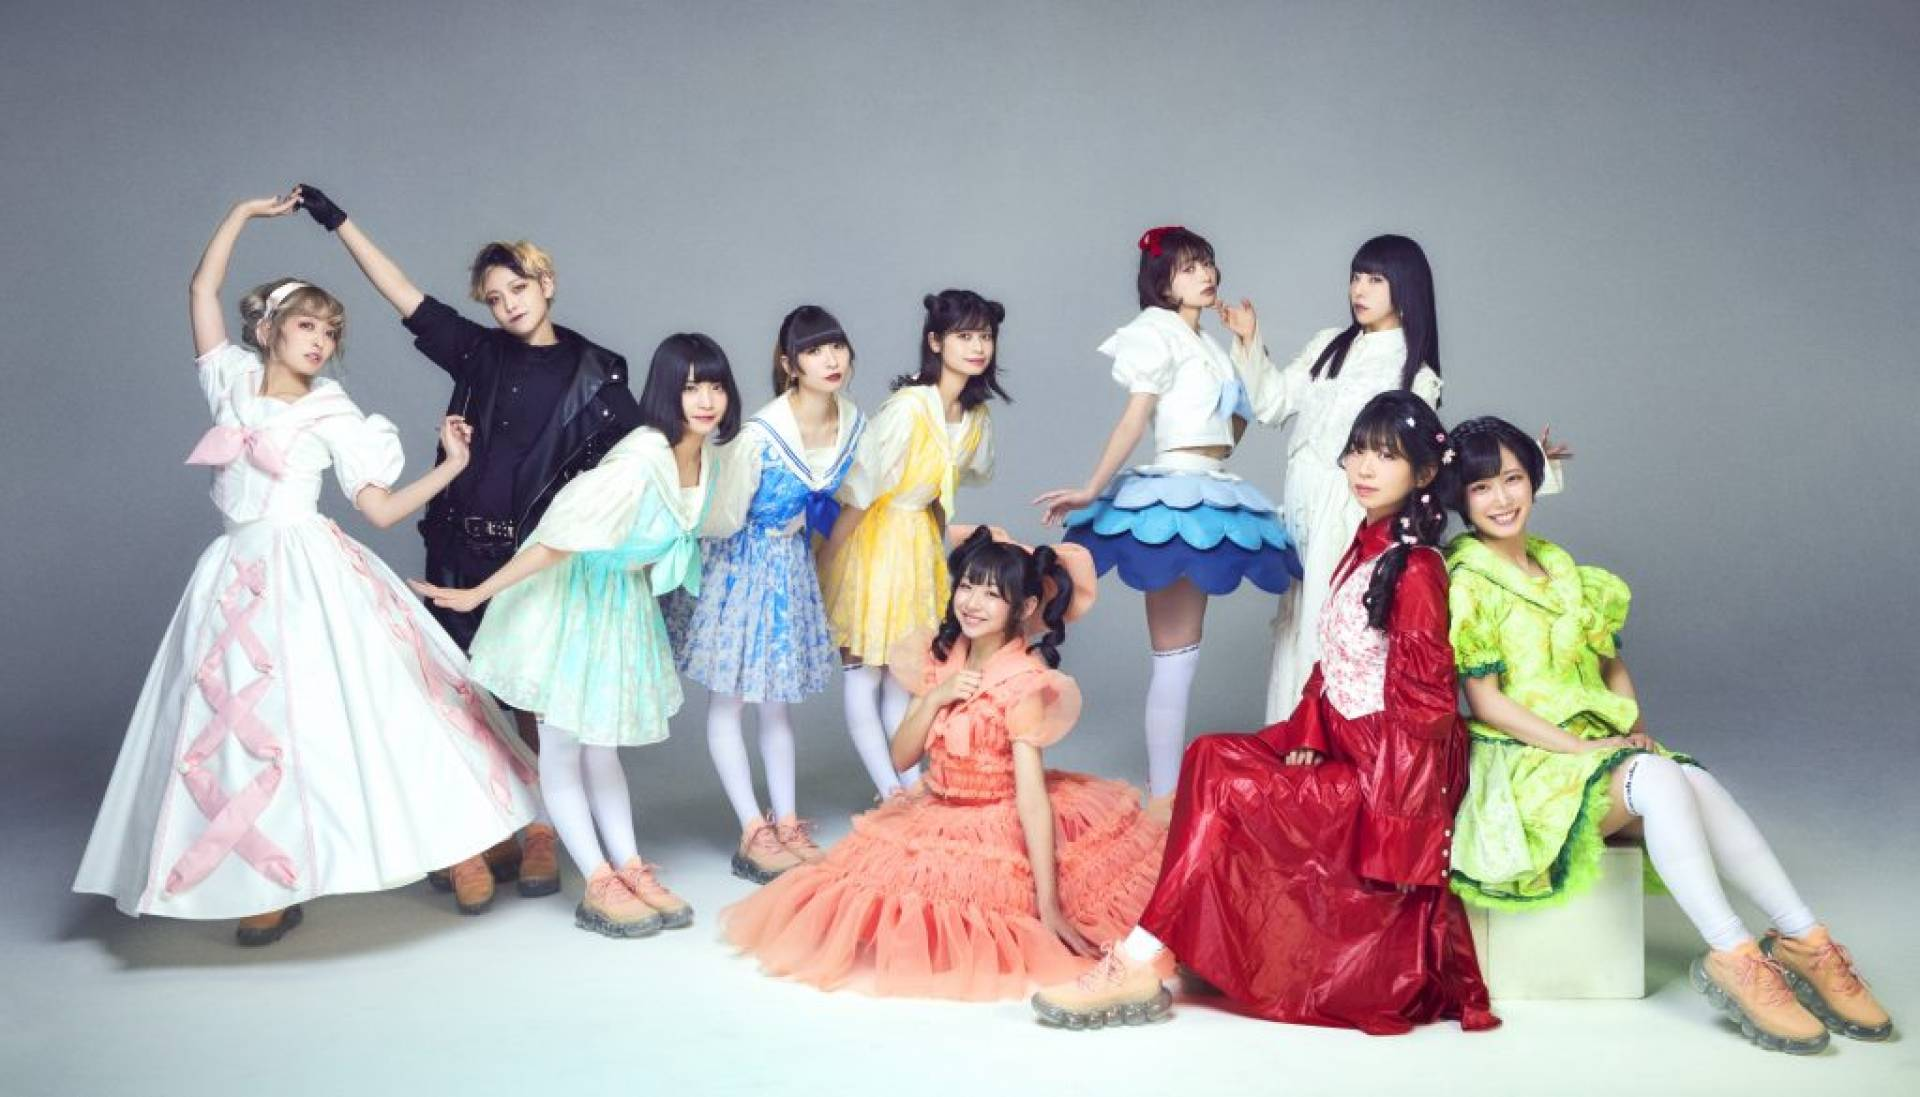 Dempagumi.inc put on a show full of emotion and surprises to celebrate Naruse Eimi's graduation.